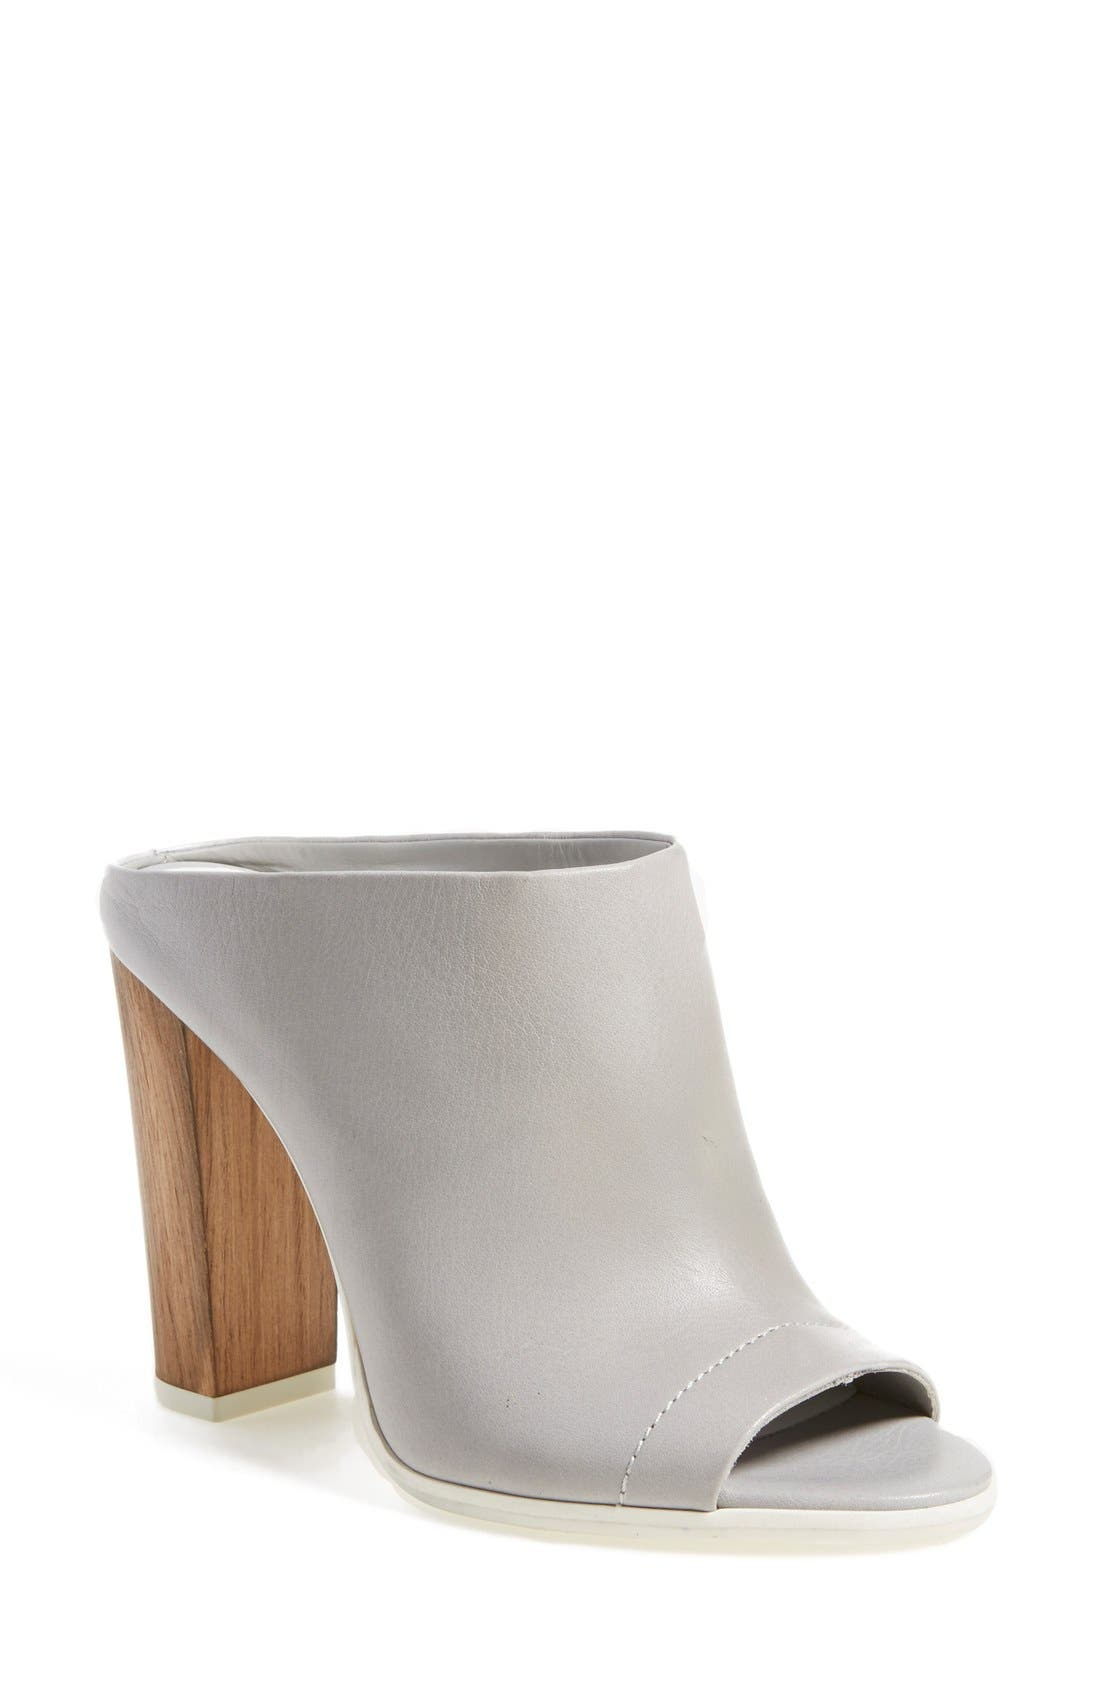 Alternate Image 1 Selected - Vince 'Allison' Leather Mule Bootie (Women)